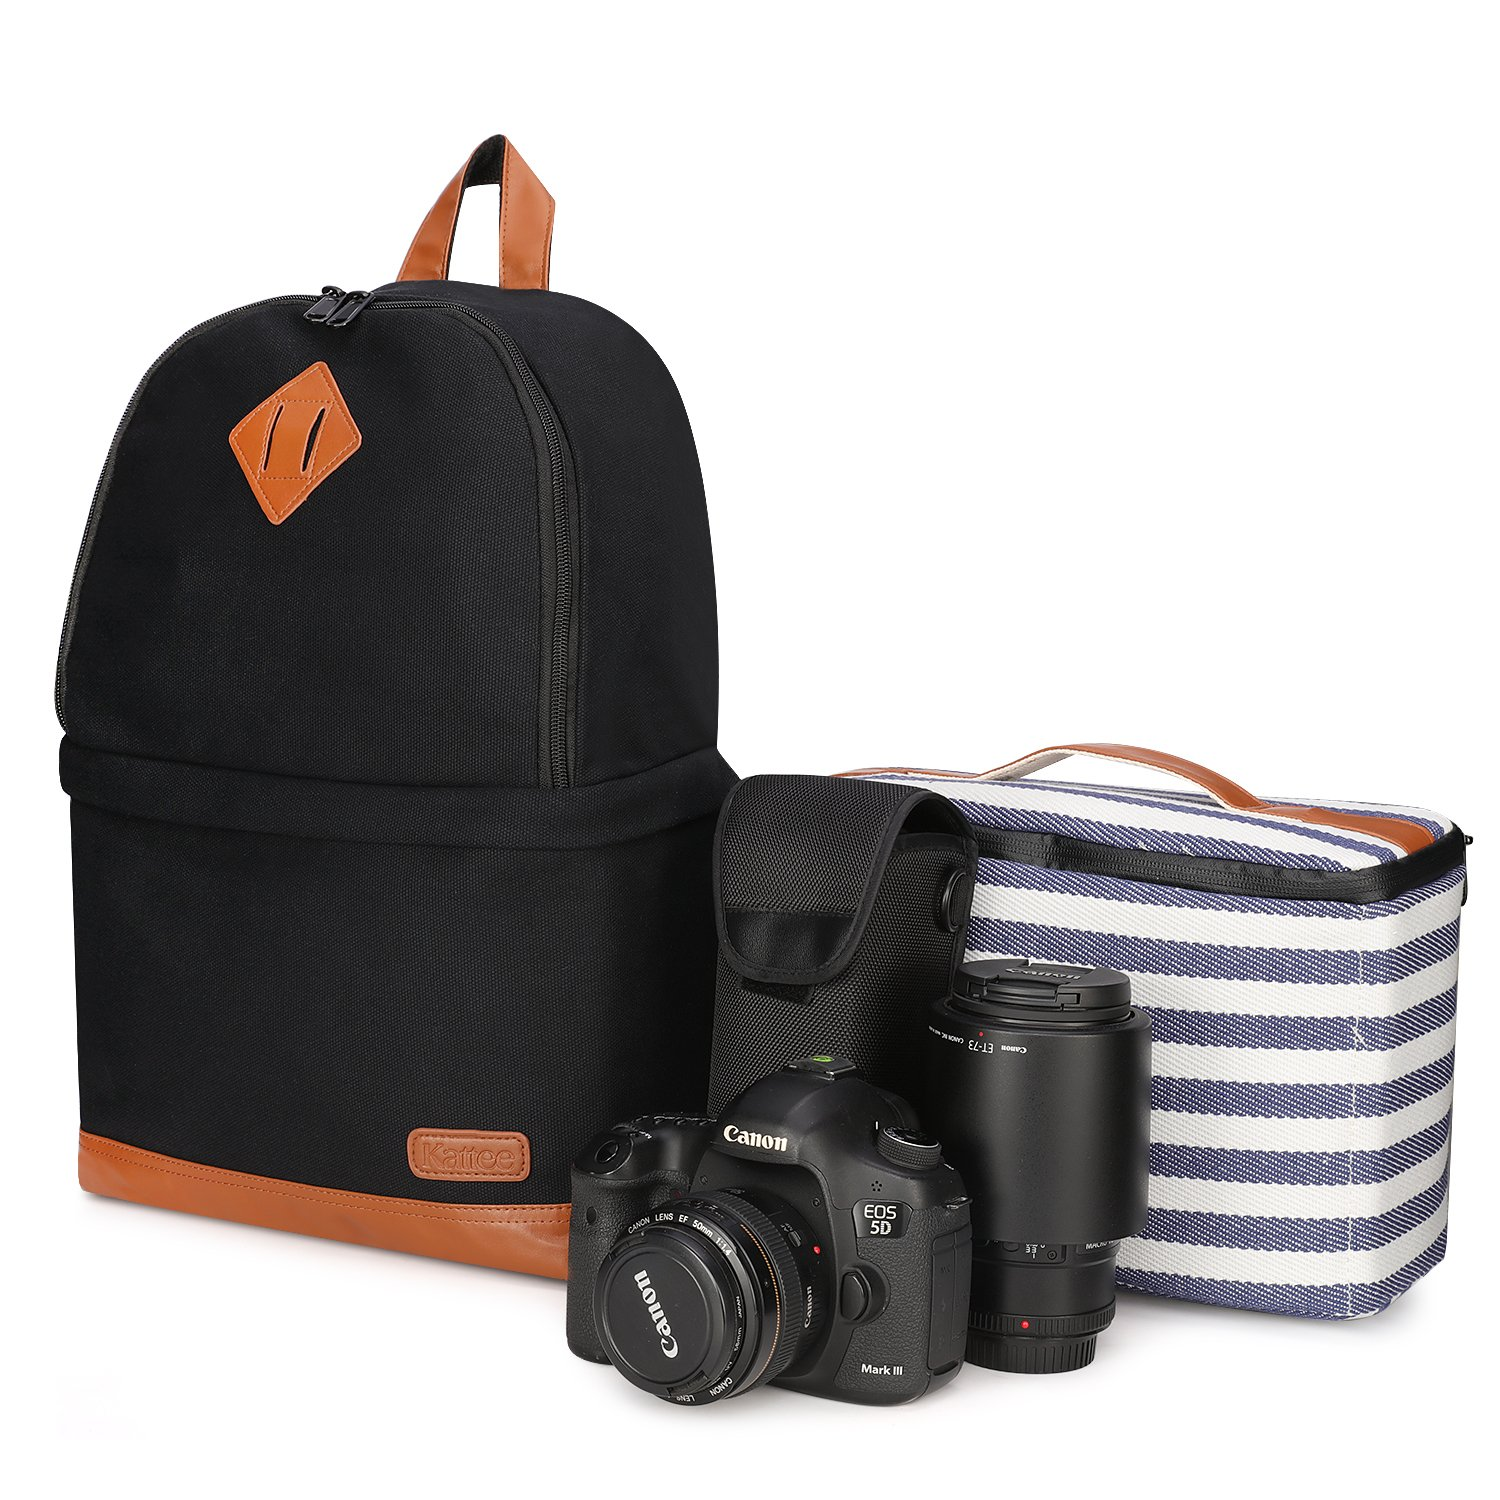 The Kattee Professional Canvas SLR DSLR Camera Backpack travel product recommended by Brittany DiCologero on Lifney.